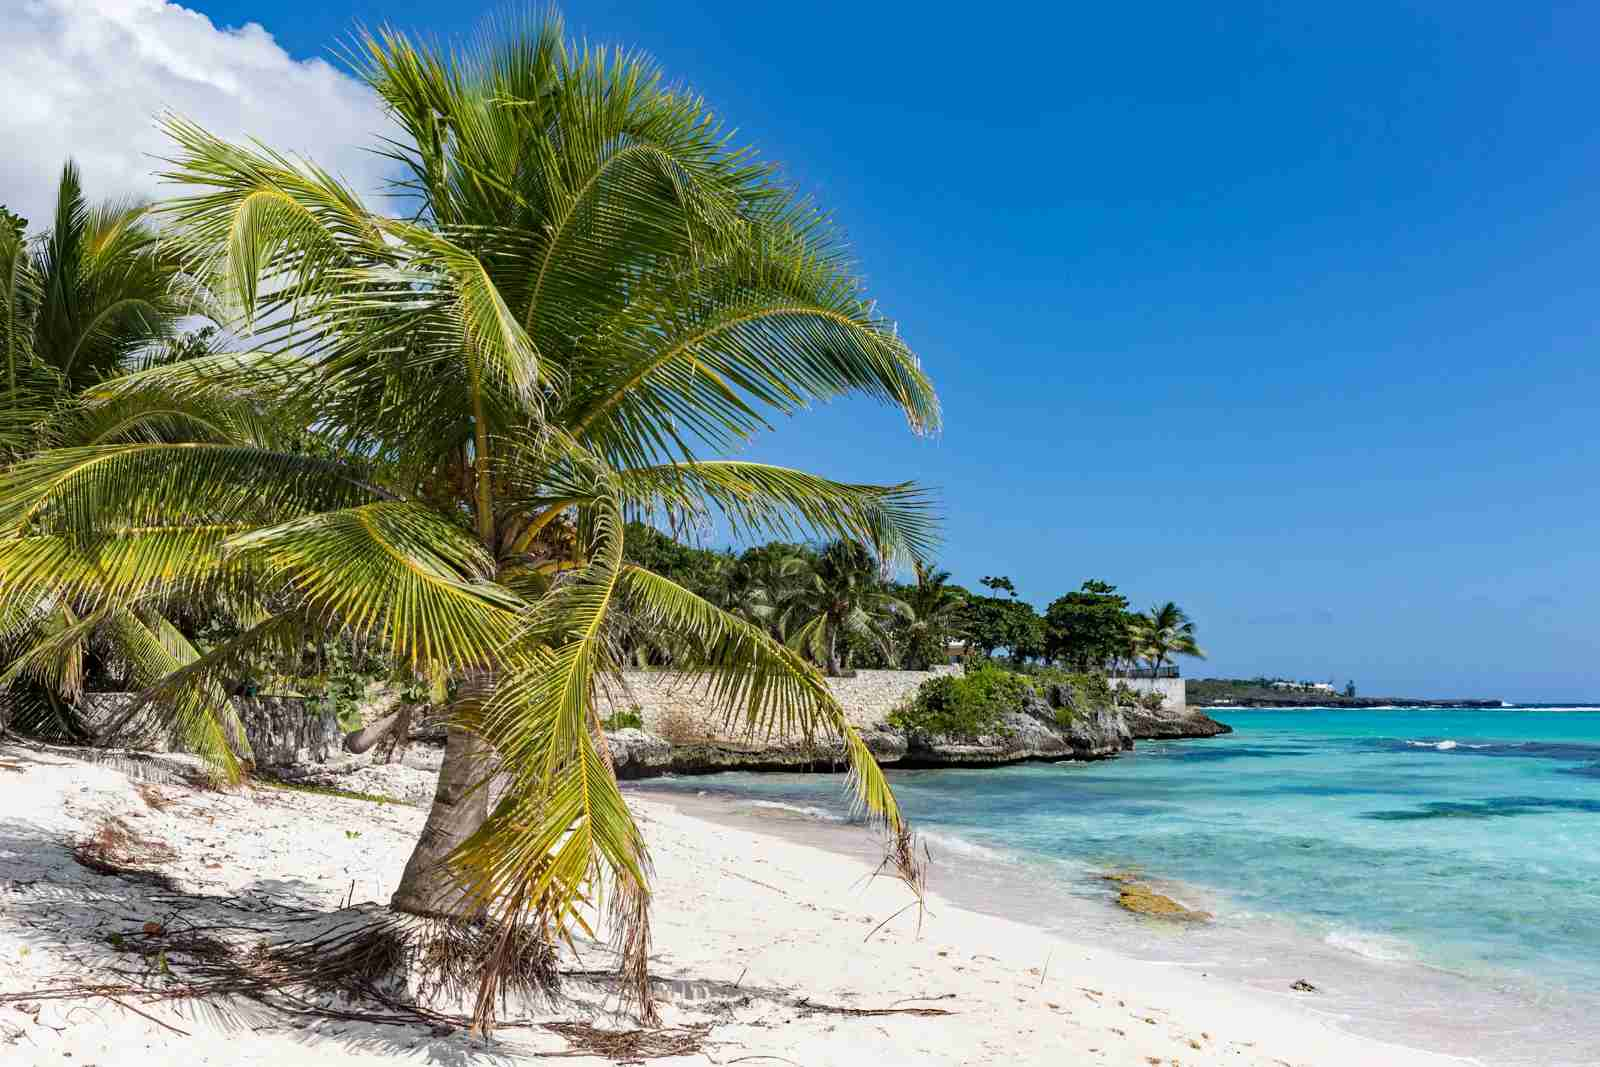 Spotts Beach, Grand Cayman. (Photo by Colin D. Young/Shutterstock)